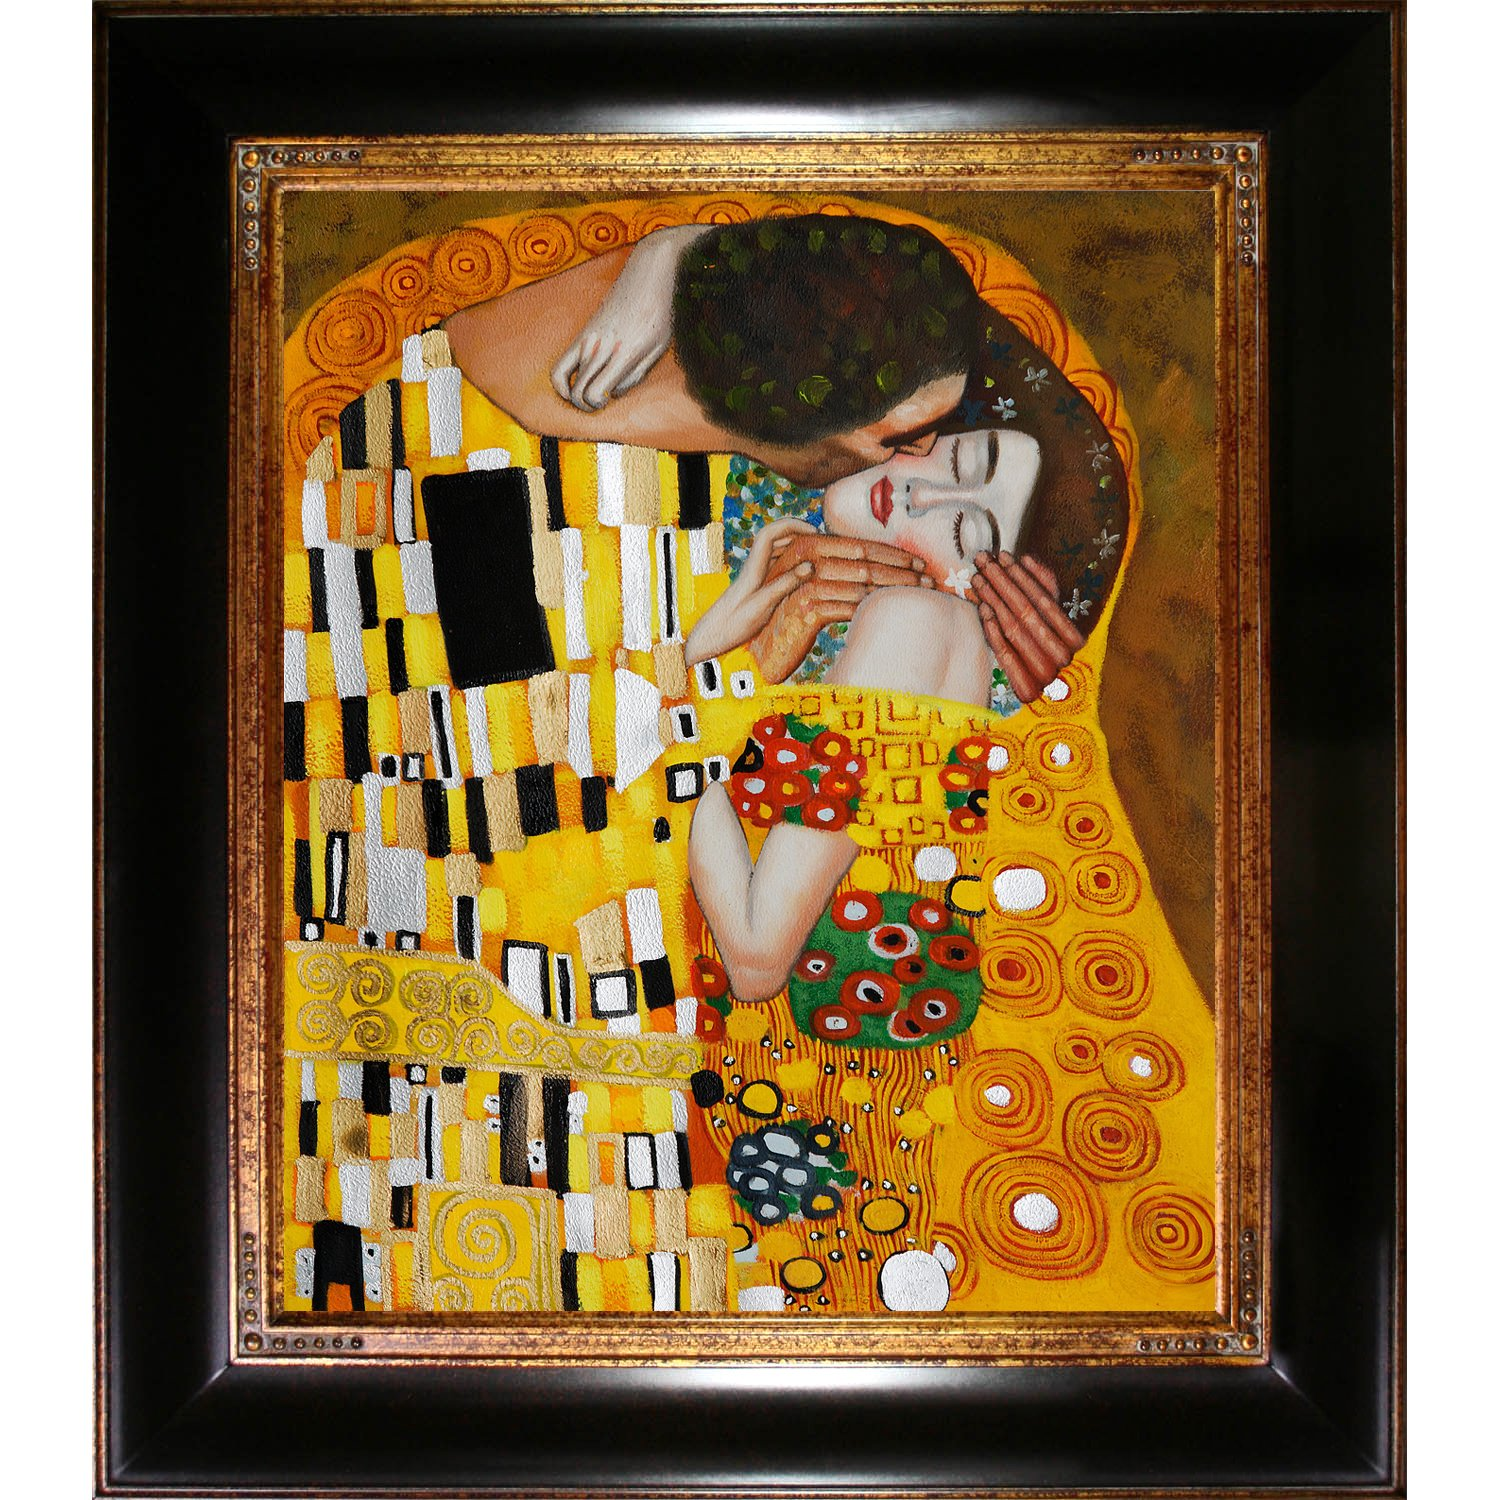 overstockArt Gustav Klimt The Kiss 20-Inch by 24-Inch Framed Oil Painting on Canvas